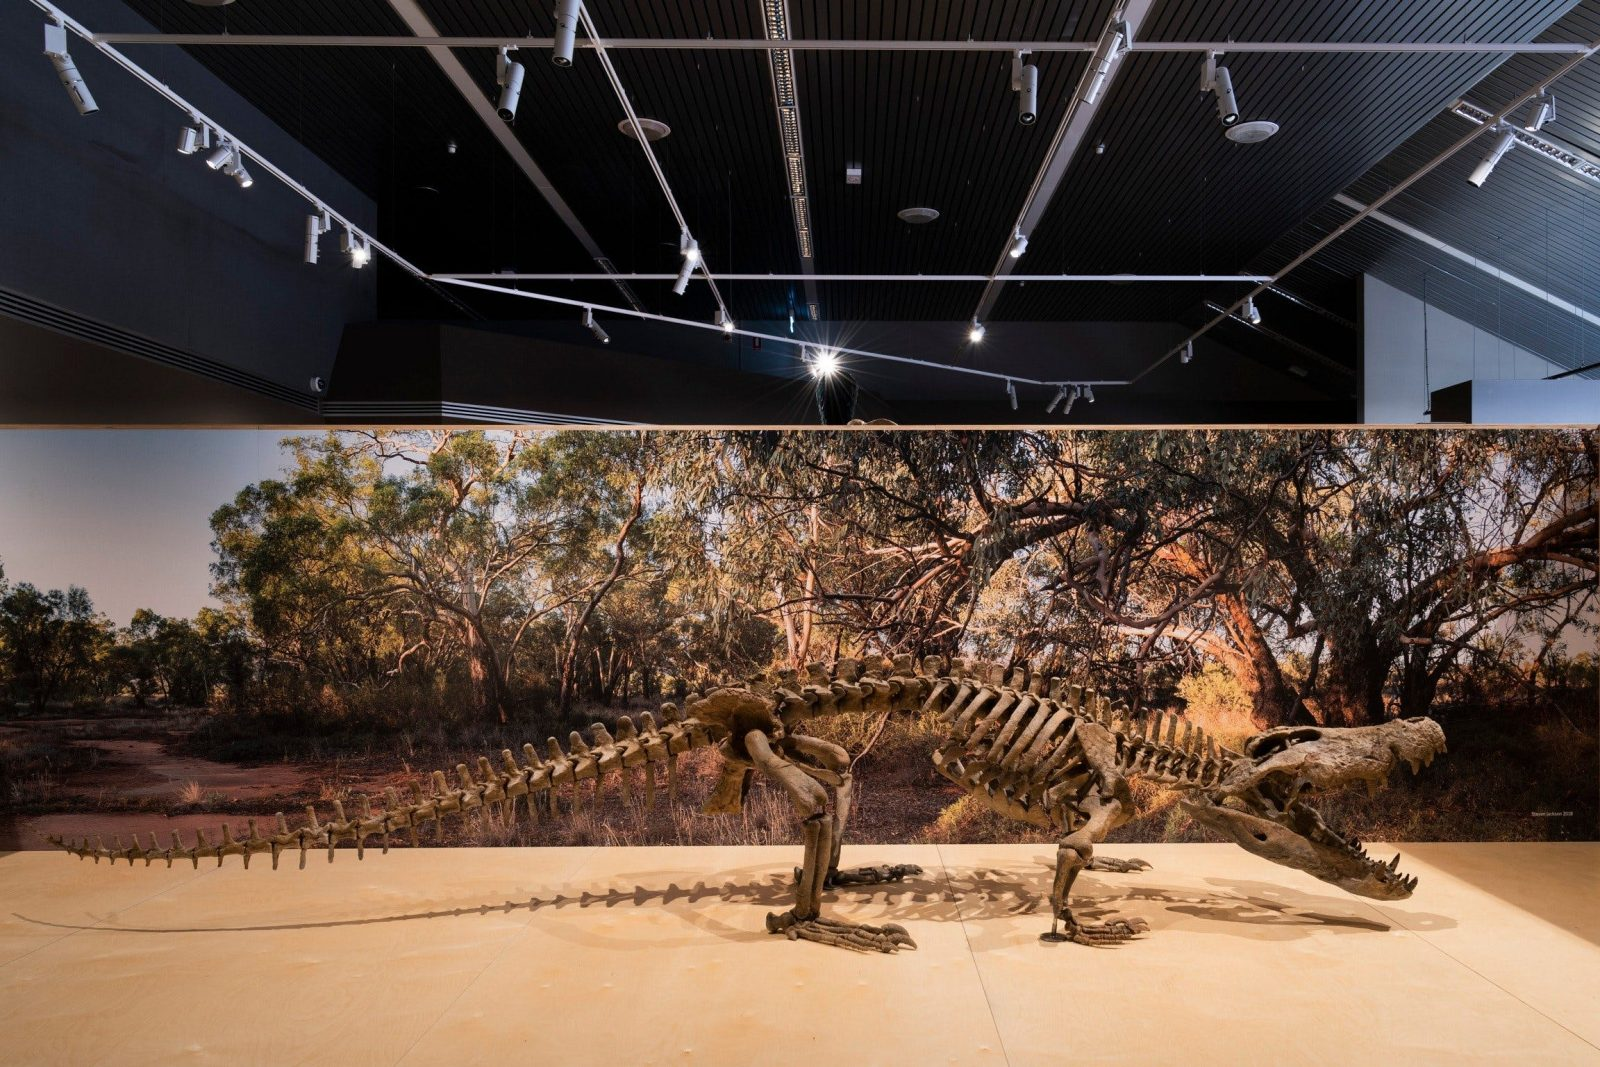 New species of crocodile uncovered Megafauna Central Alice Springs